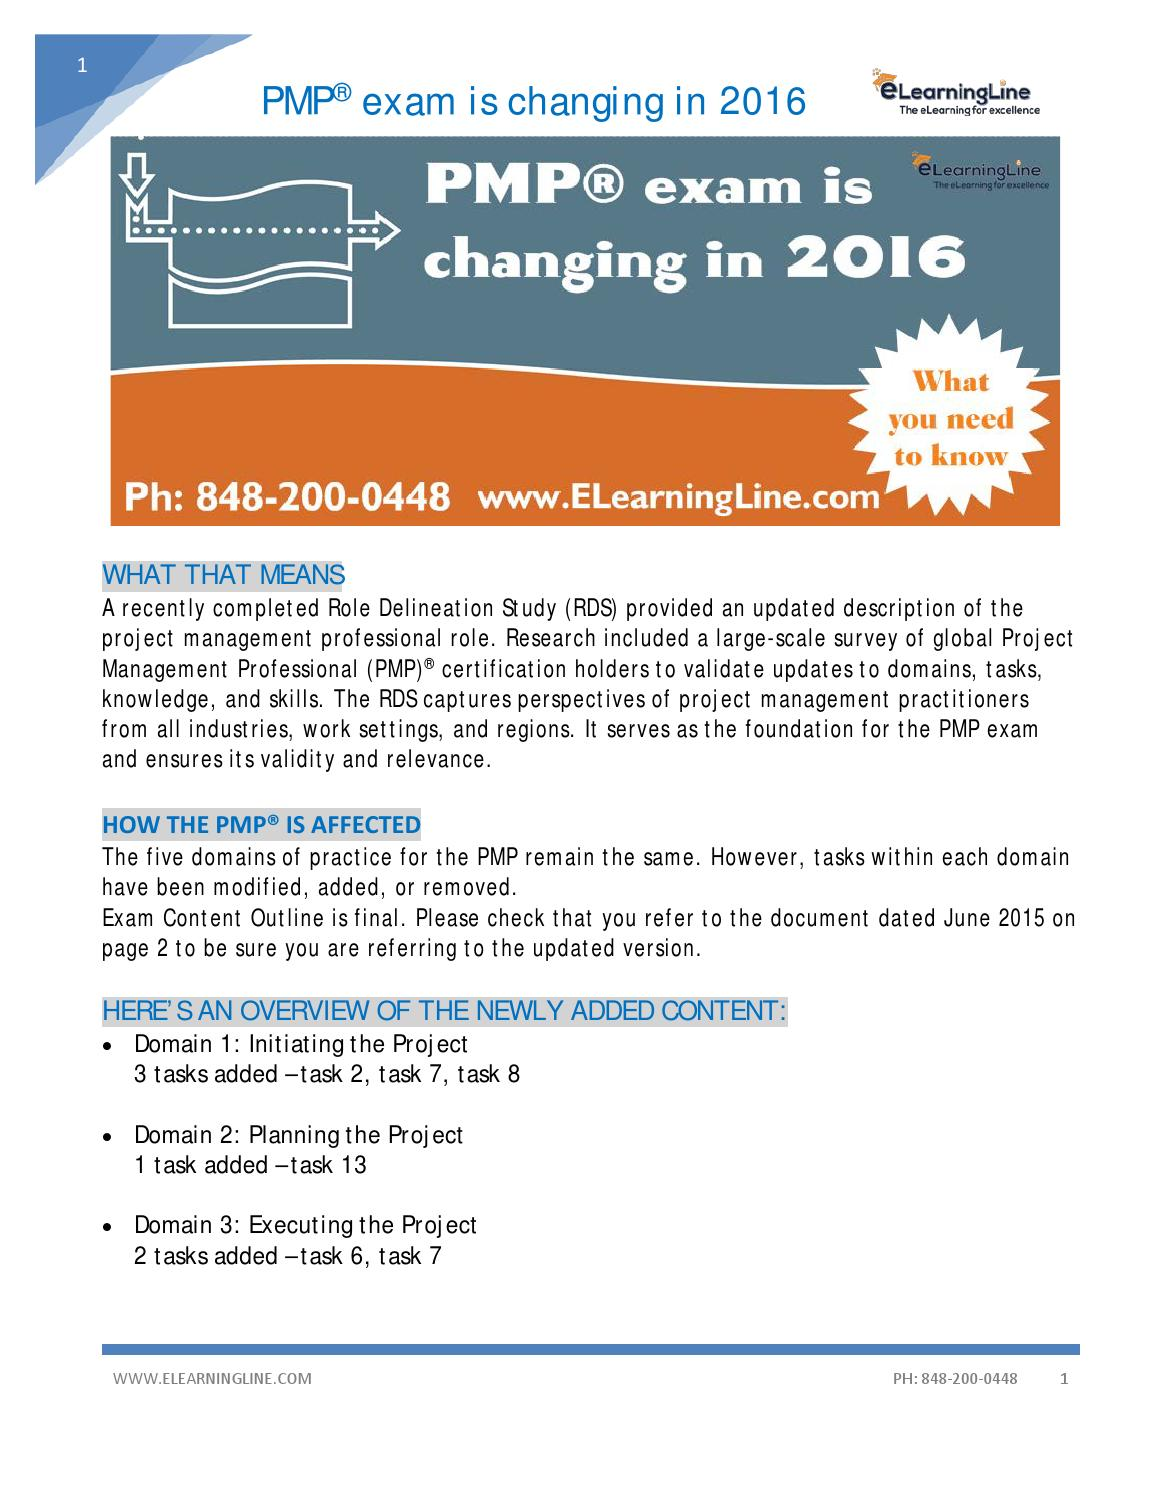 Pmp Exam Changing In 2016 By Elearningline Issuu